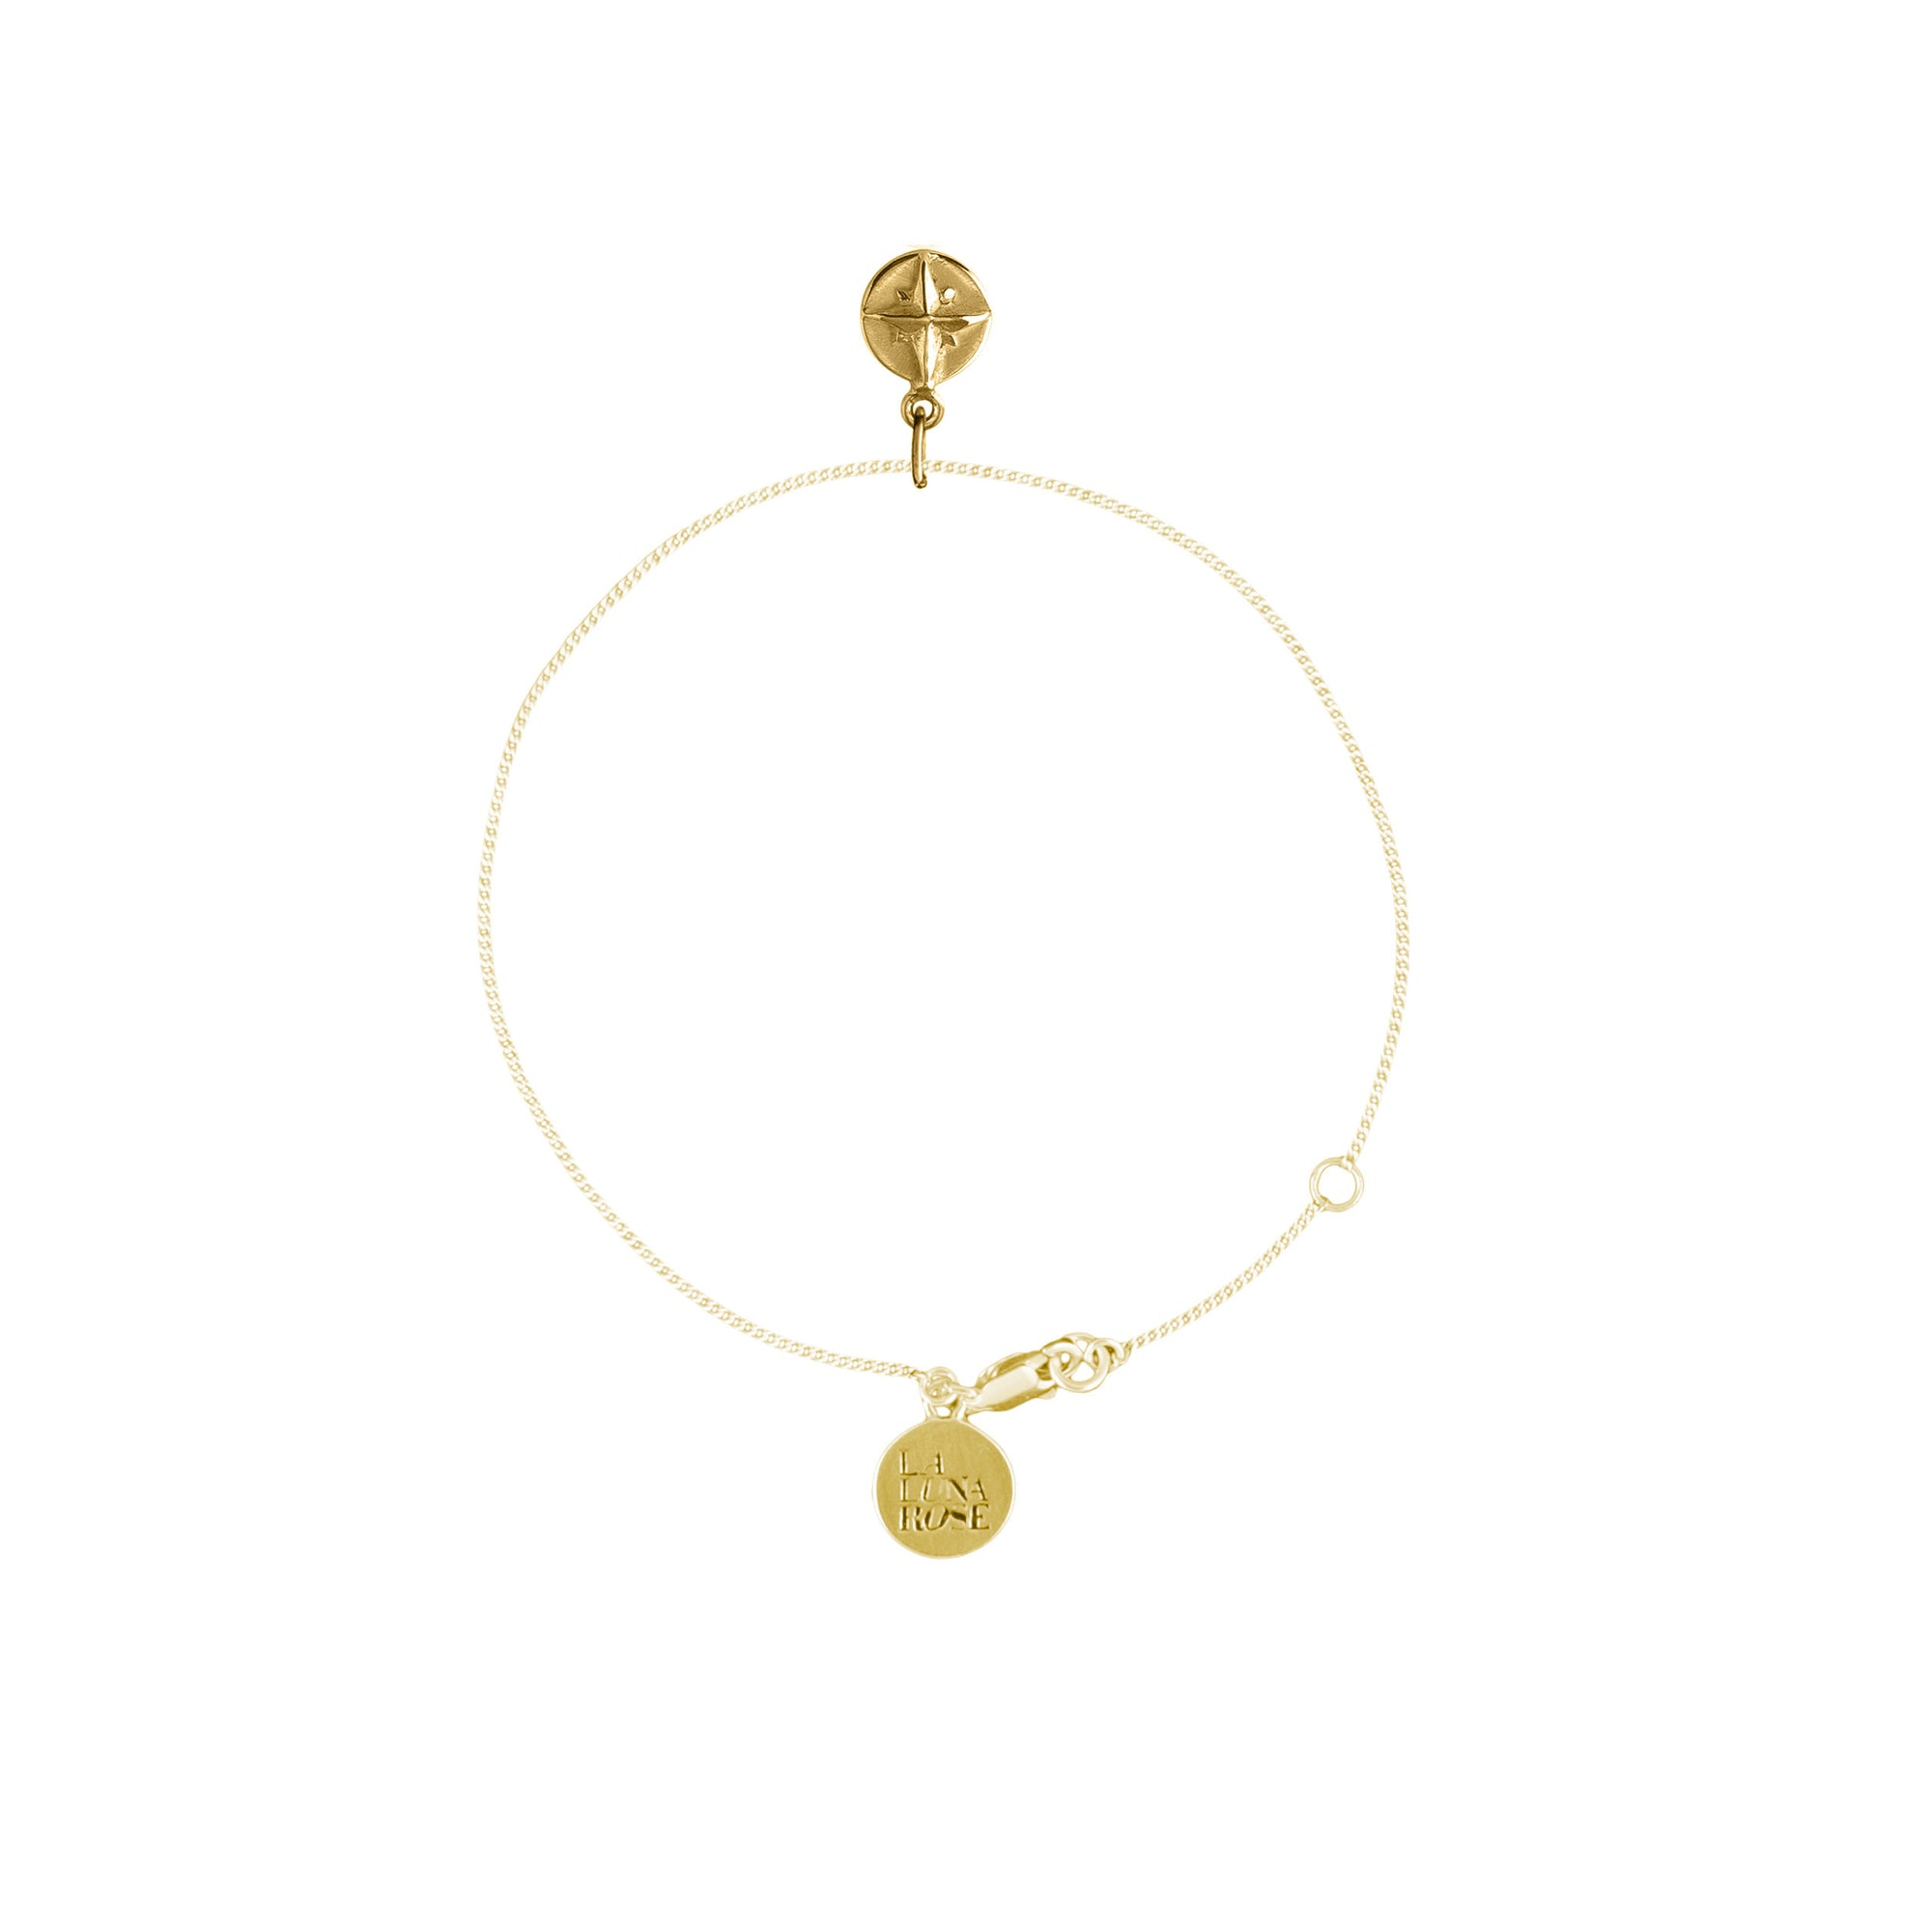 Born to Roam Compass Charm Bracelet - gold